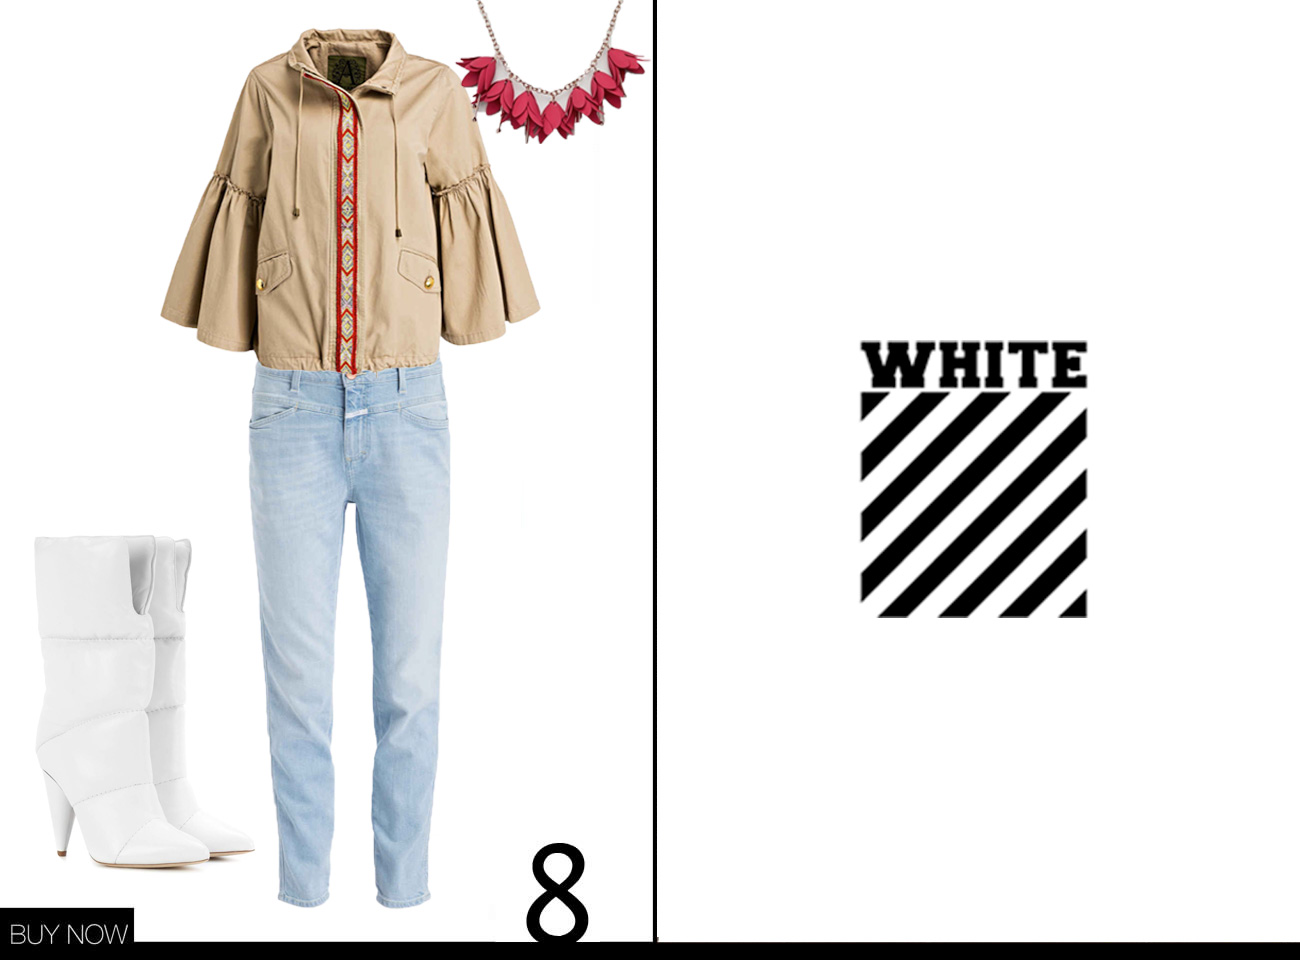 Off White Herbst Winter Kollektion 18/19 nachgestylt